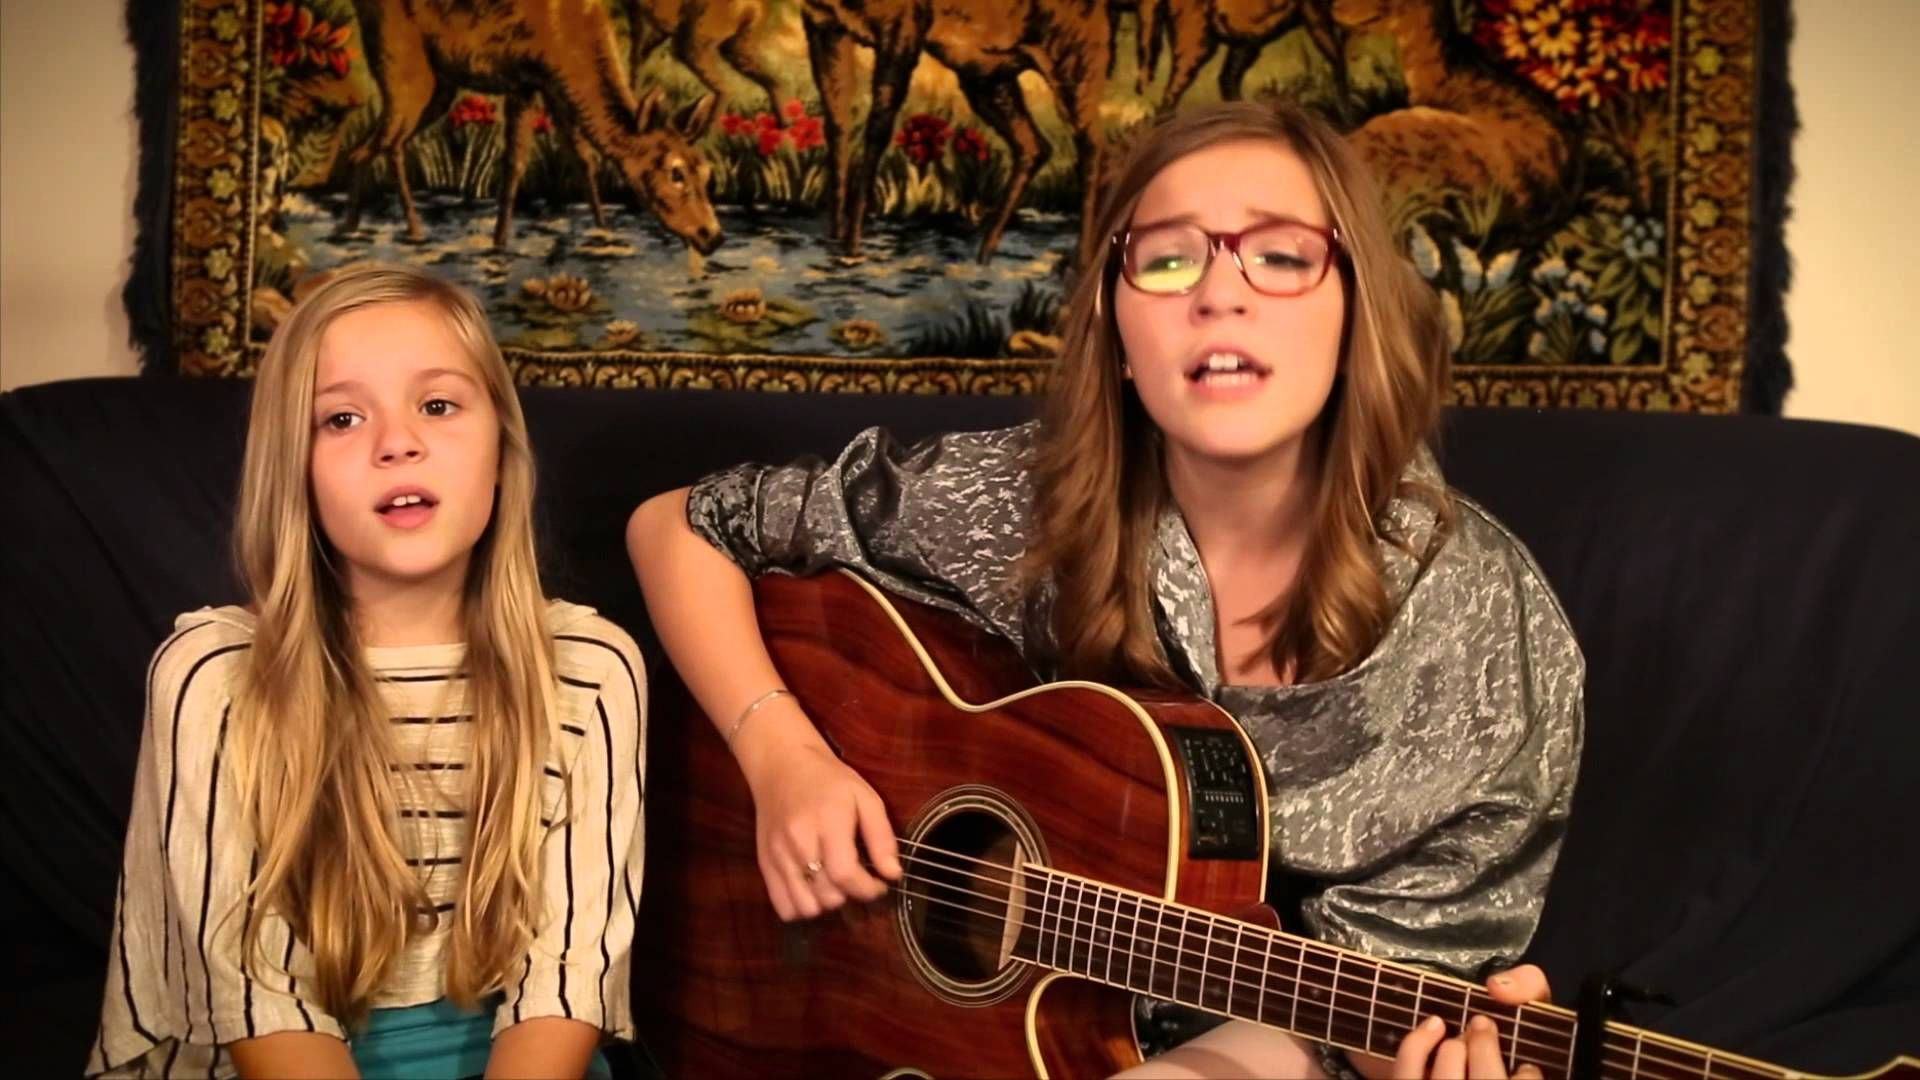 Lennon maisy real life sisters who play sisters on the tv show nashville music love girls - Lennon and maisy bio ...